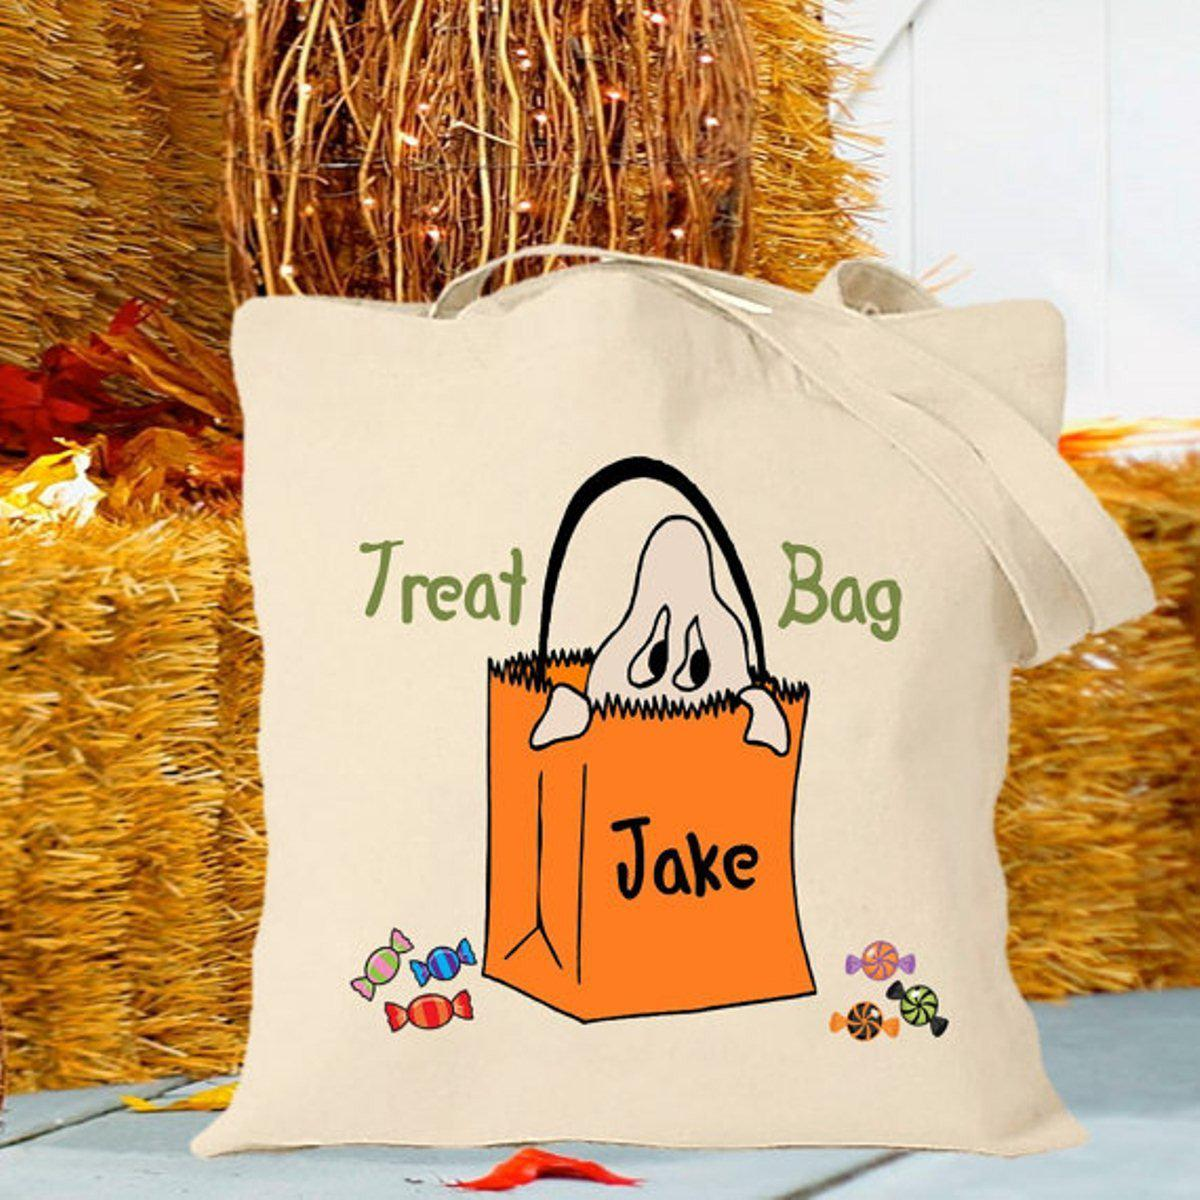 Halloween Trick Or Treat Bags Personalized.Personalized Halloween Treat Bags Trick Or Treat